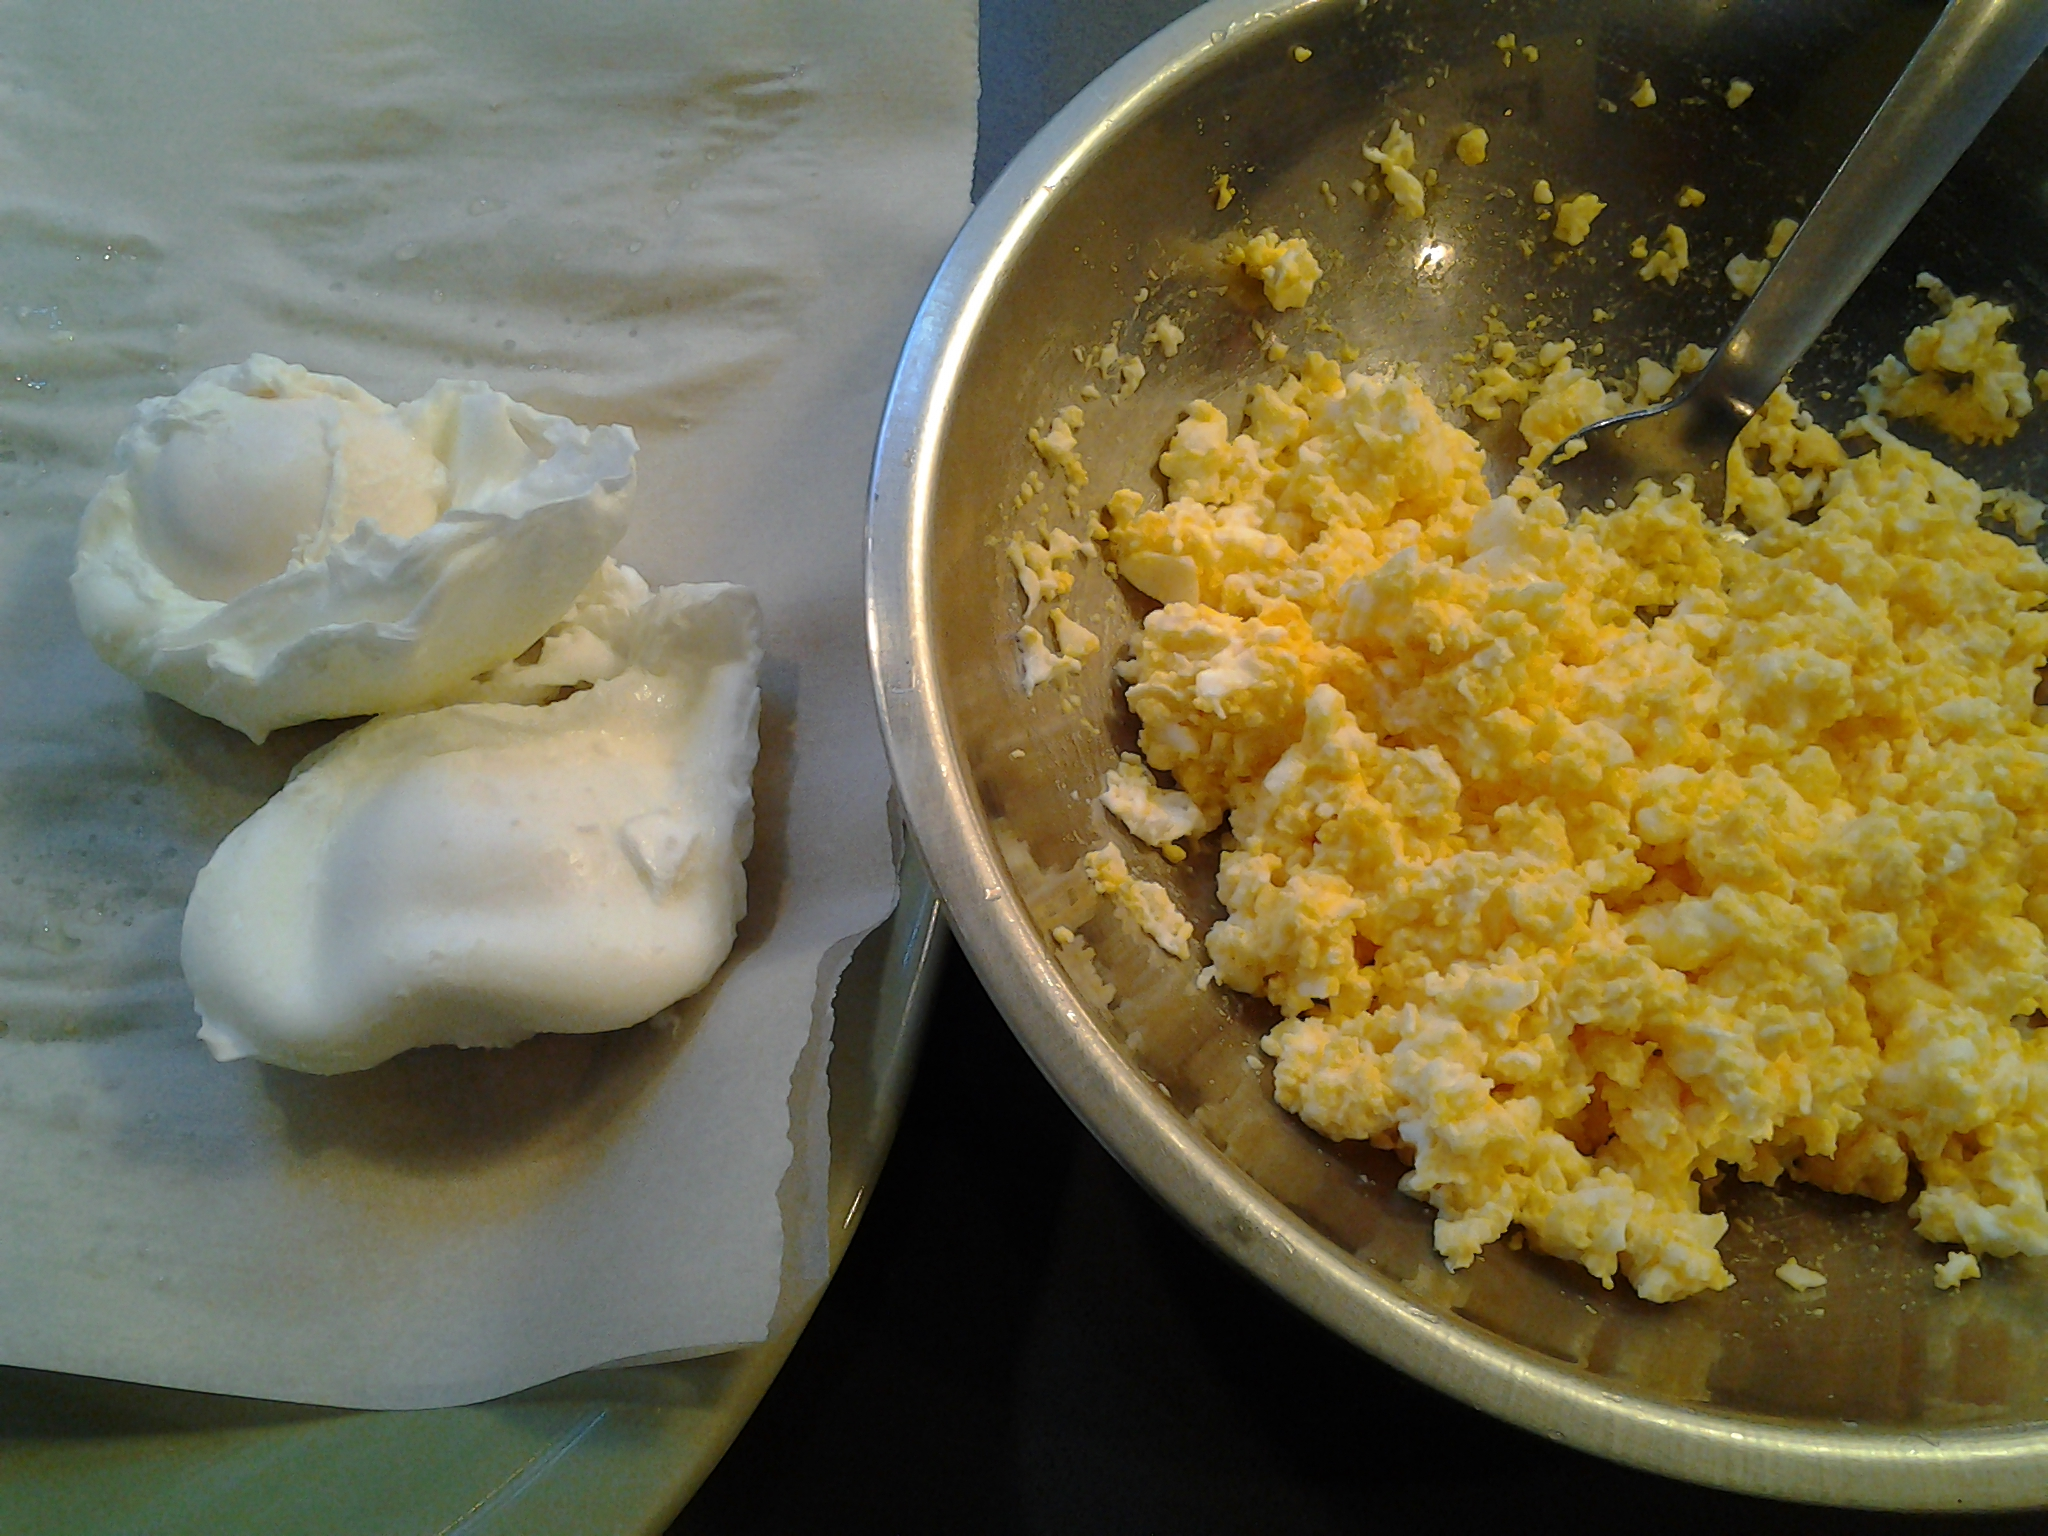 Another way to get eggs ready for egg salad!